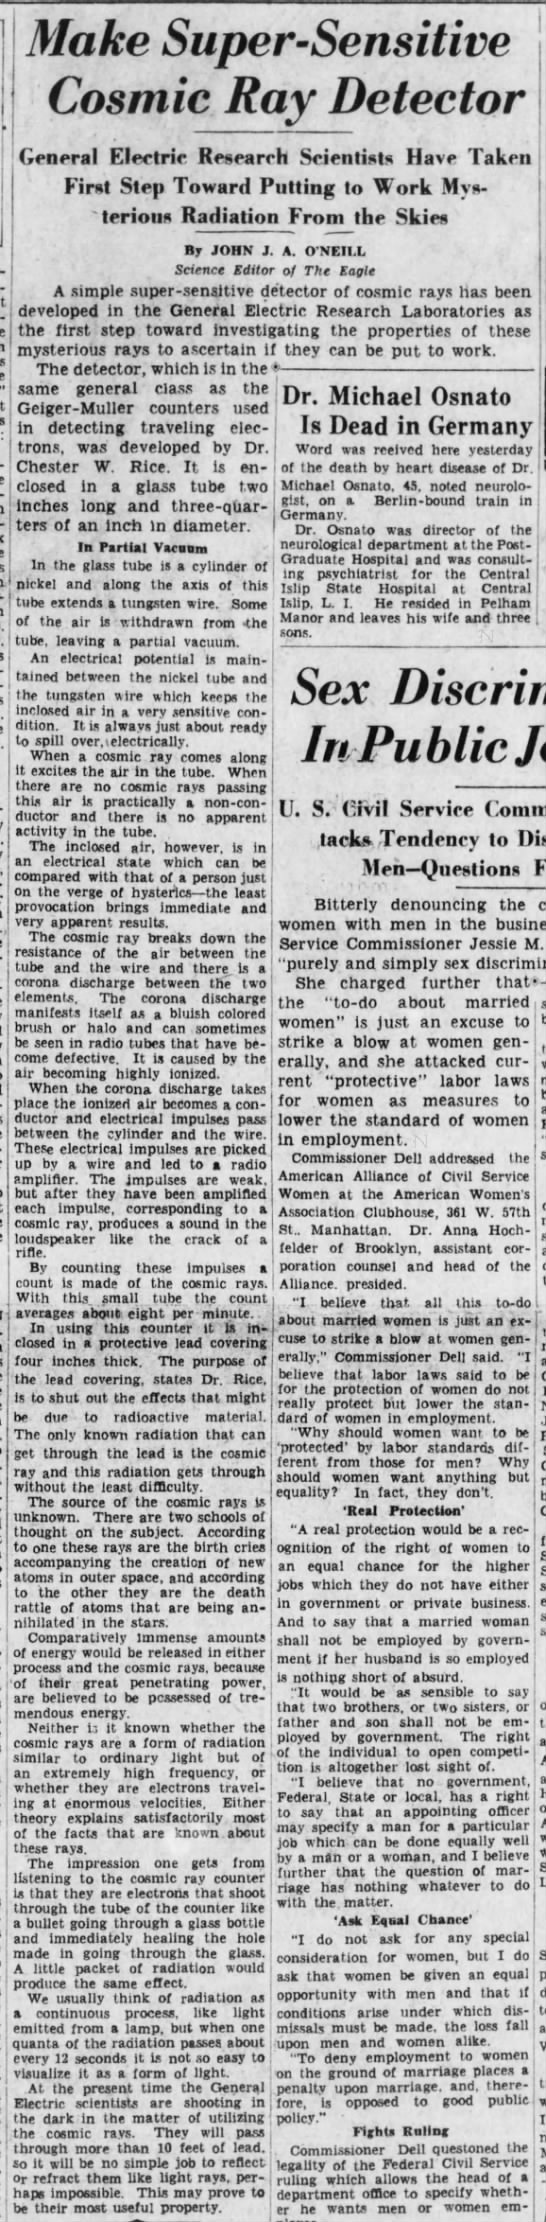 1932 John J ONeill Chester W Rice Cosmic Ray Detector for GE Brooklyn Daily Eagle June 17